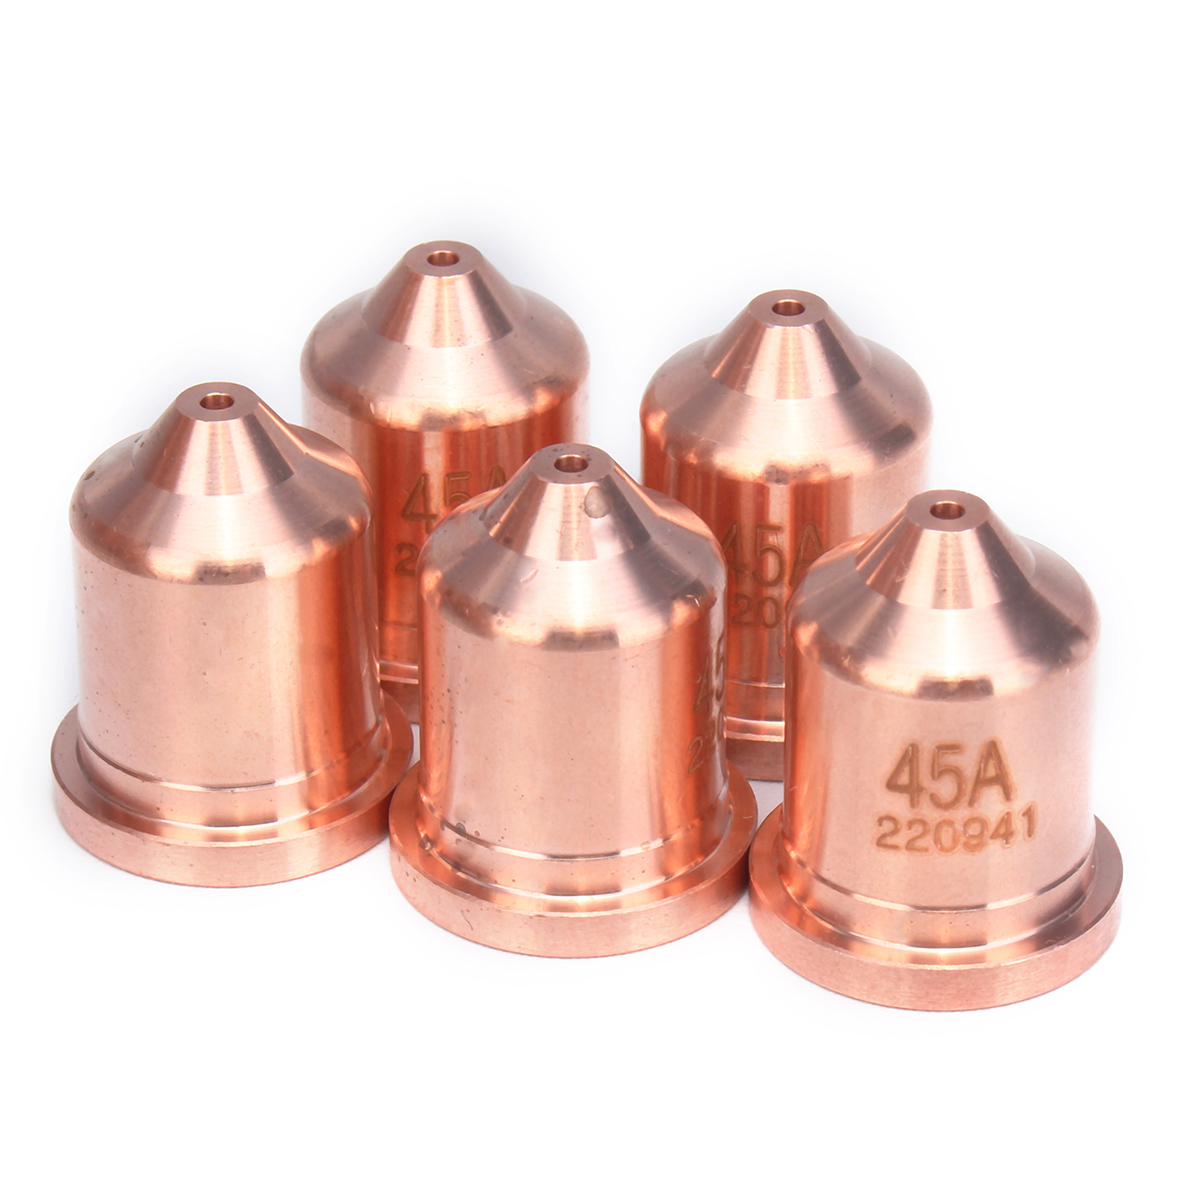 5X220941 Electrode Tip Nozzle Cutting Plasma Aftermarket Consumable For PMX 45XP